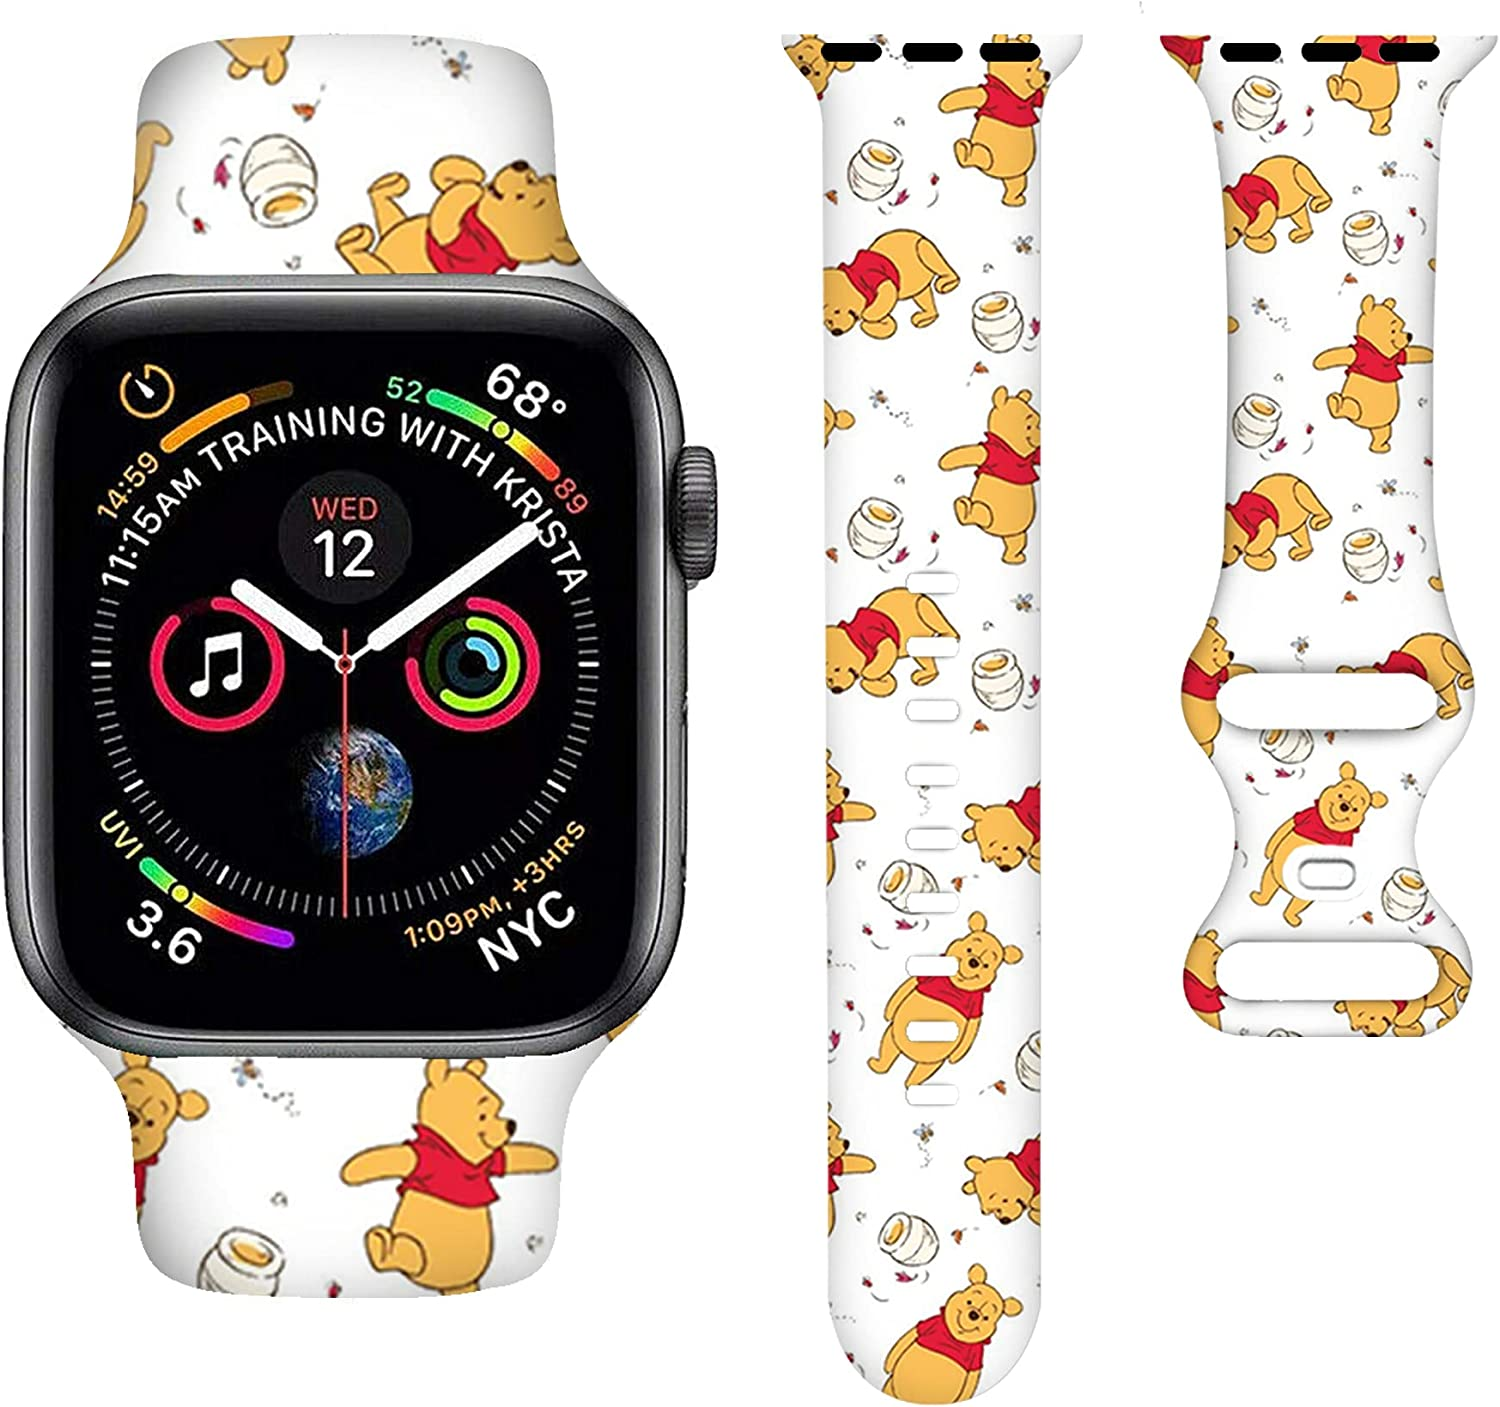 Anime Watch Bands Cartoons Smart Watch band Compatible iWatch Soft Silicone Replacement Wristband Bands Universal All black white 38mm /40mm for Women